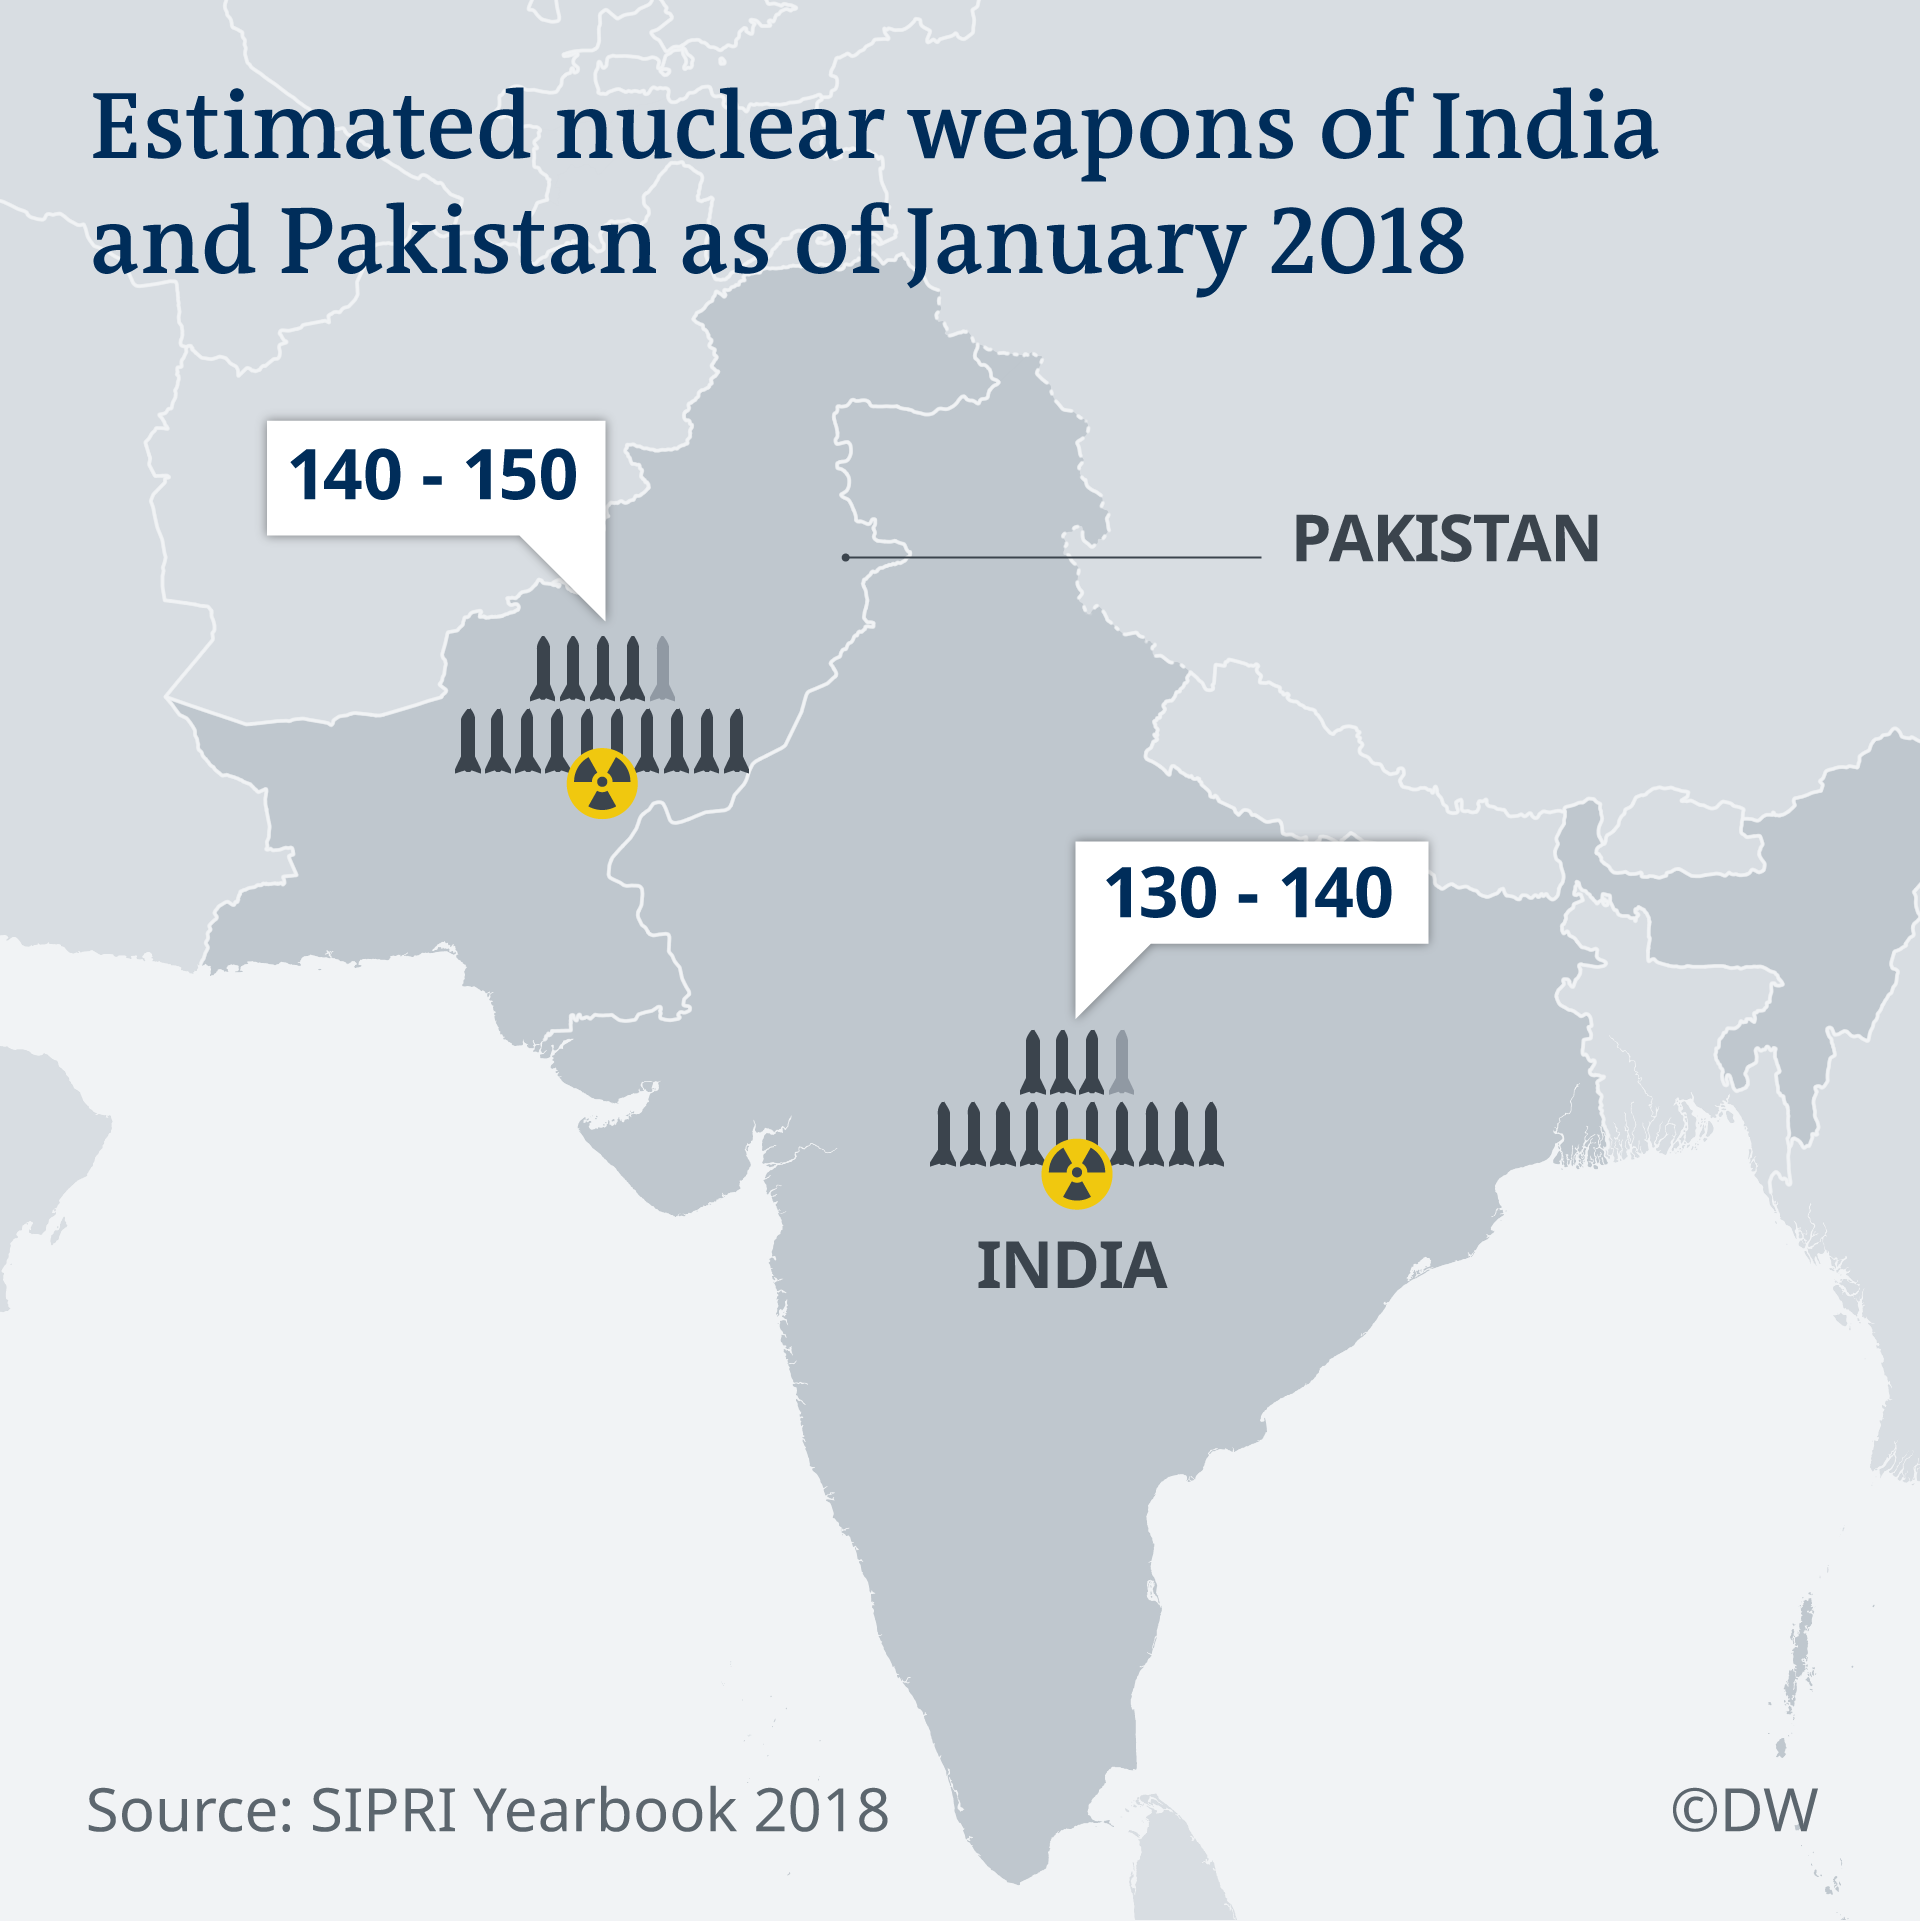 Nuclear fears abound after India-Pakistan military